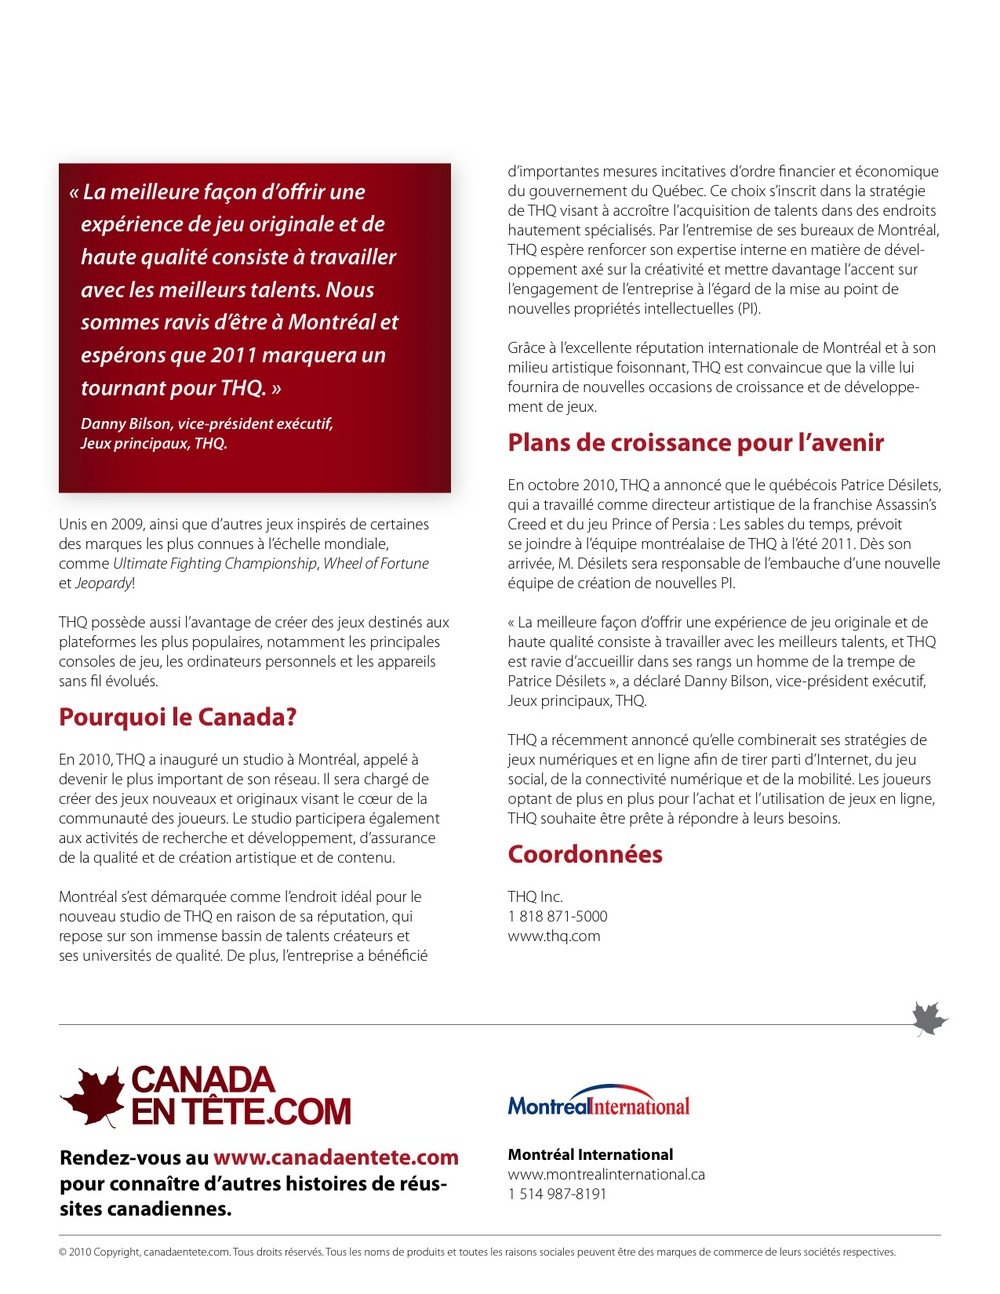 2011_01_CanadaEnTete_Montreal_THQ_1-0_view-page2.jpg